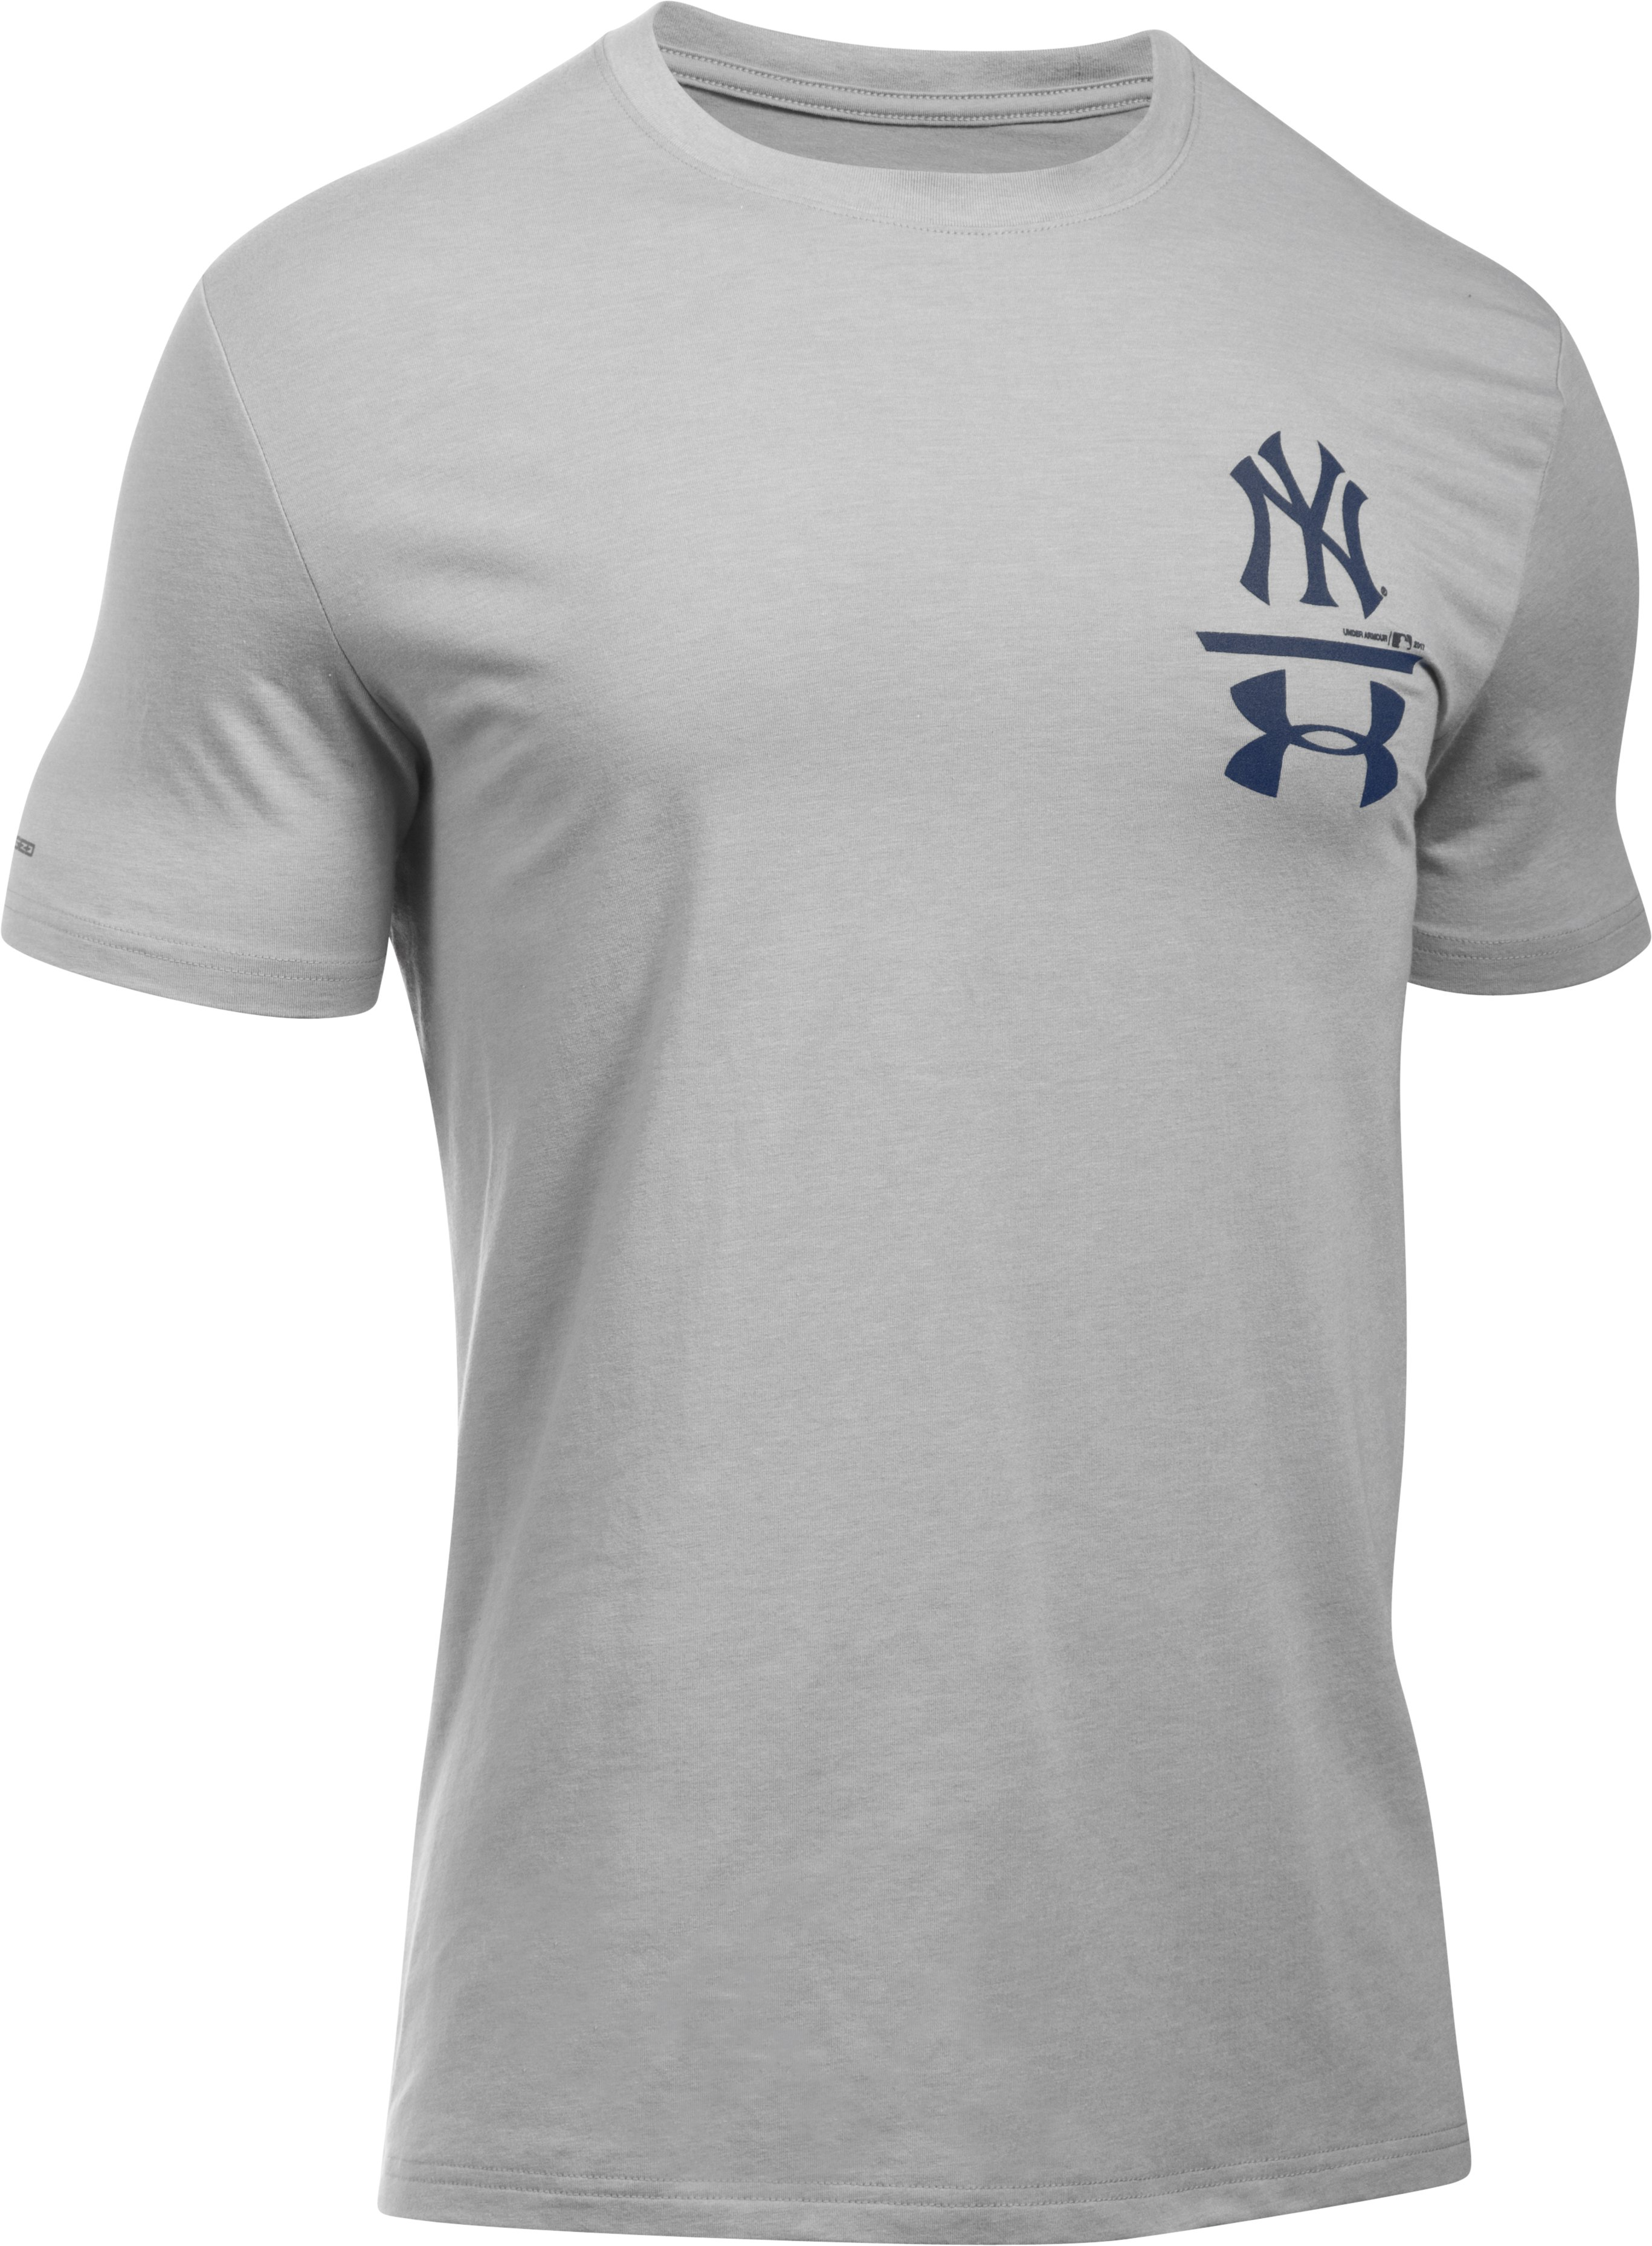 Men's New York Yankees Logo T-Shirt, True Gray Heather,